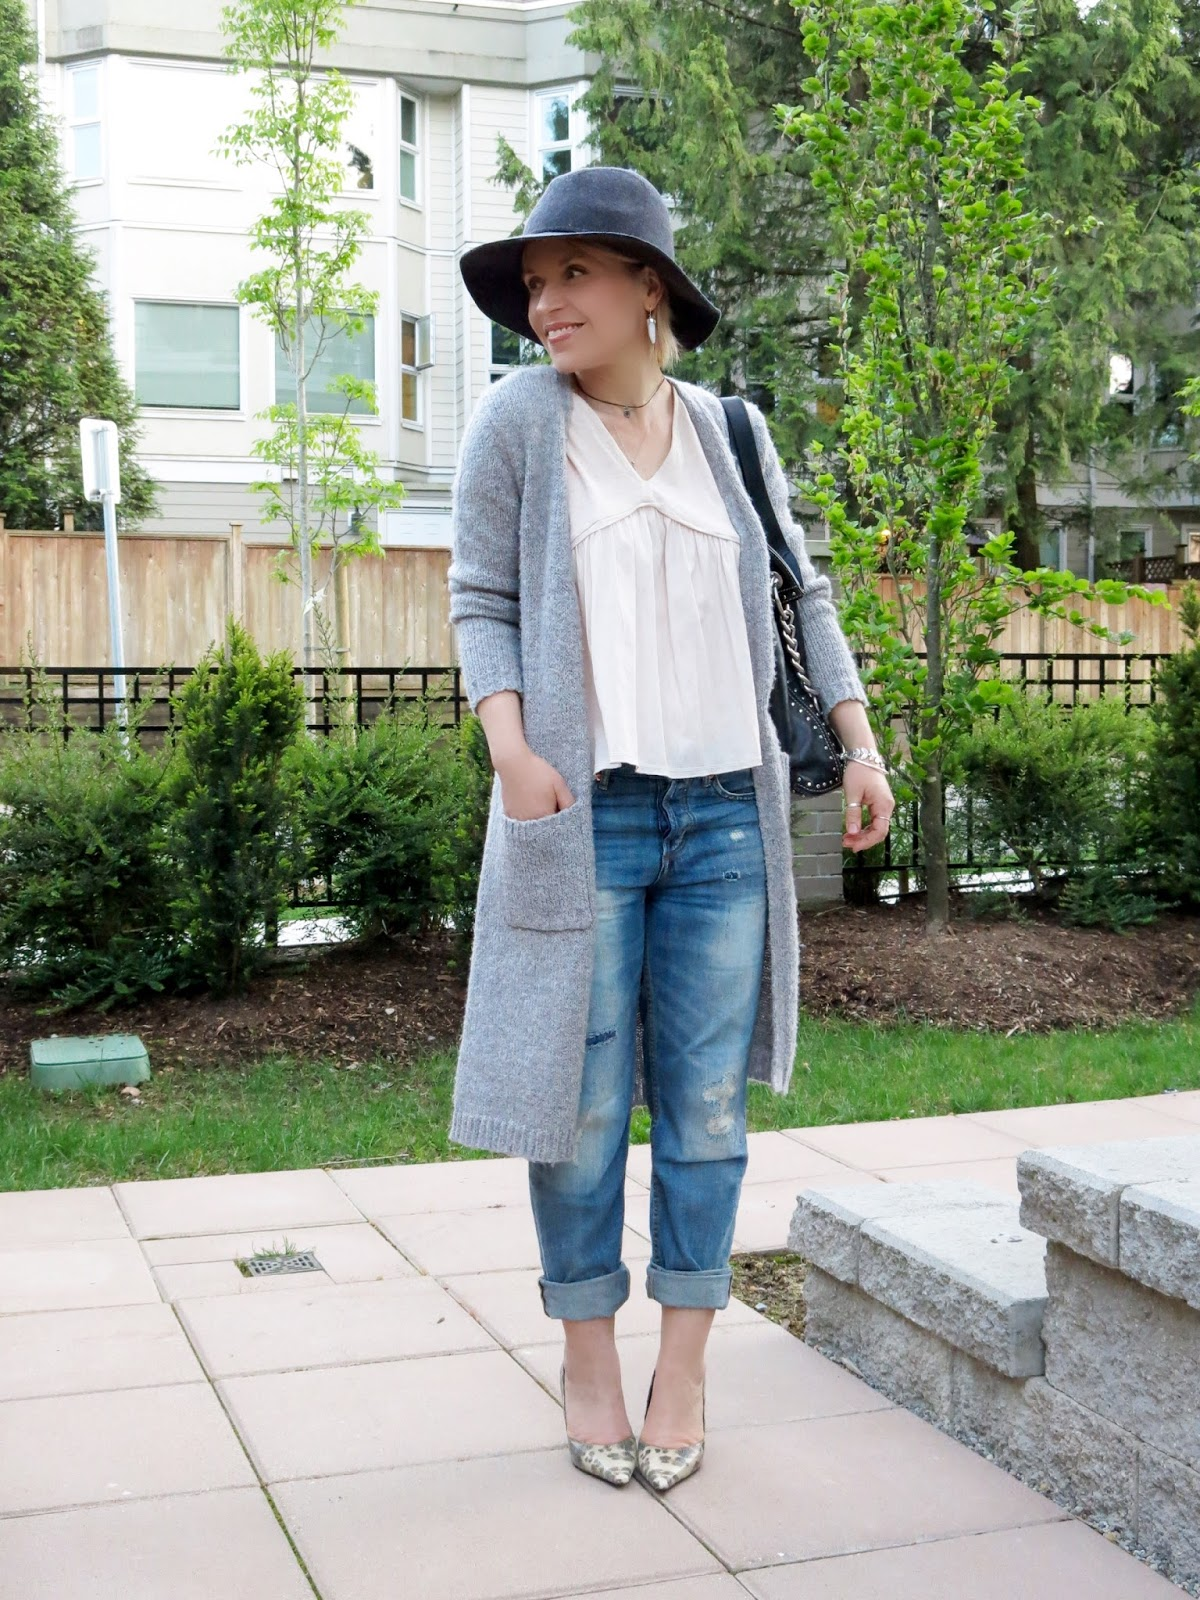 styling boyfriend jeans with a Zara top, long cardigan, reptile-patterned pumps, and floppy hat